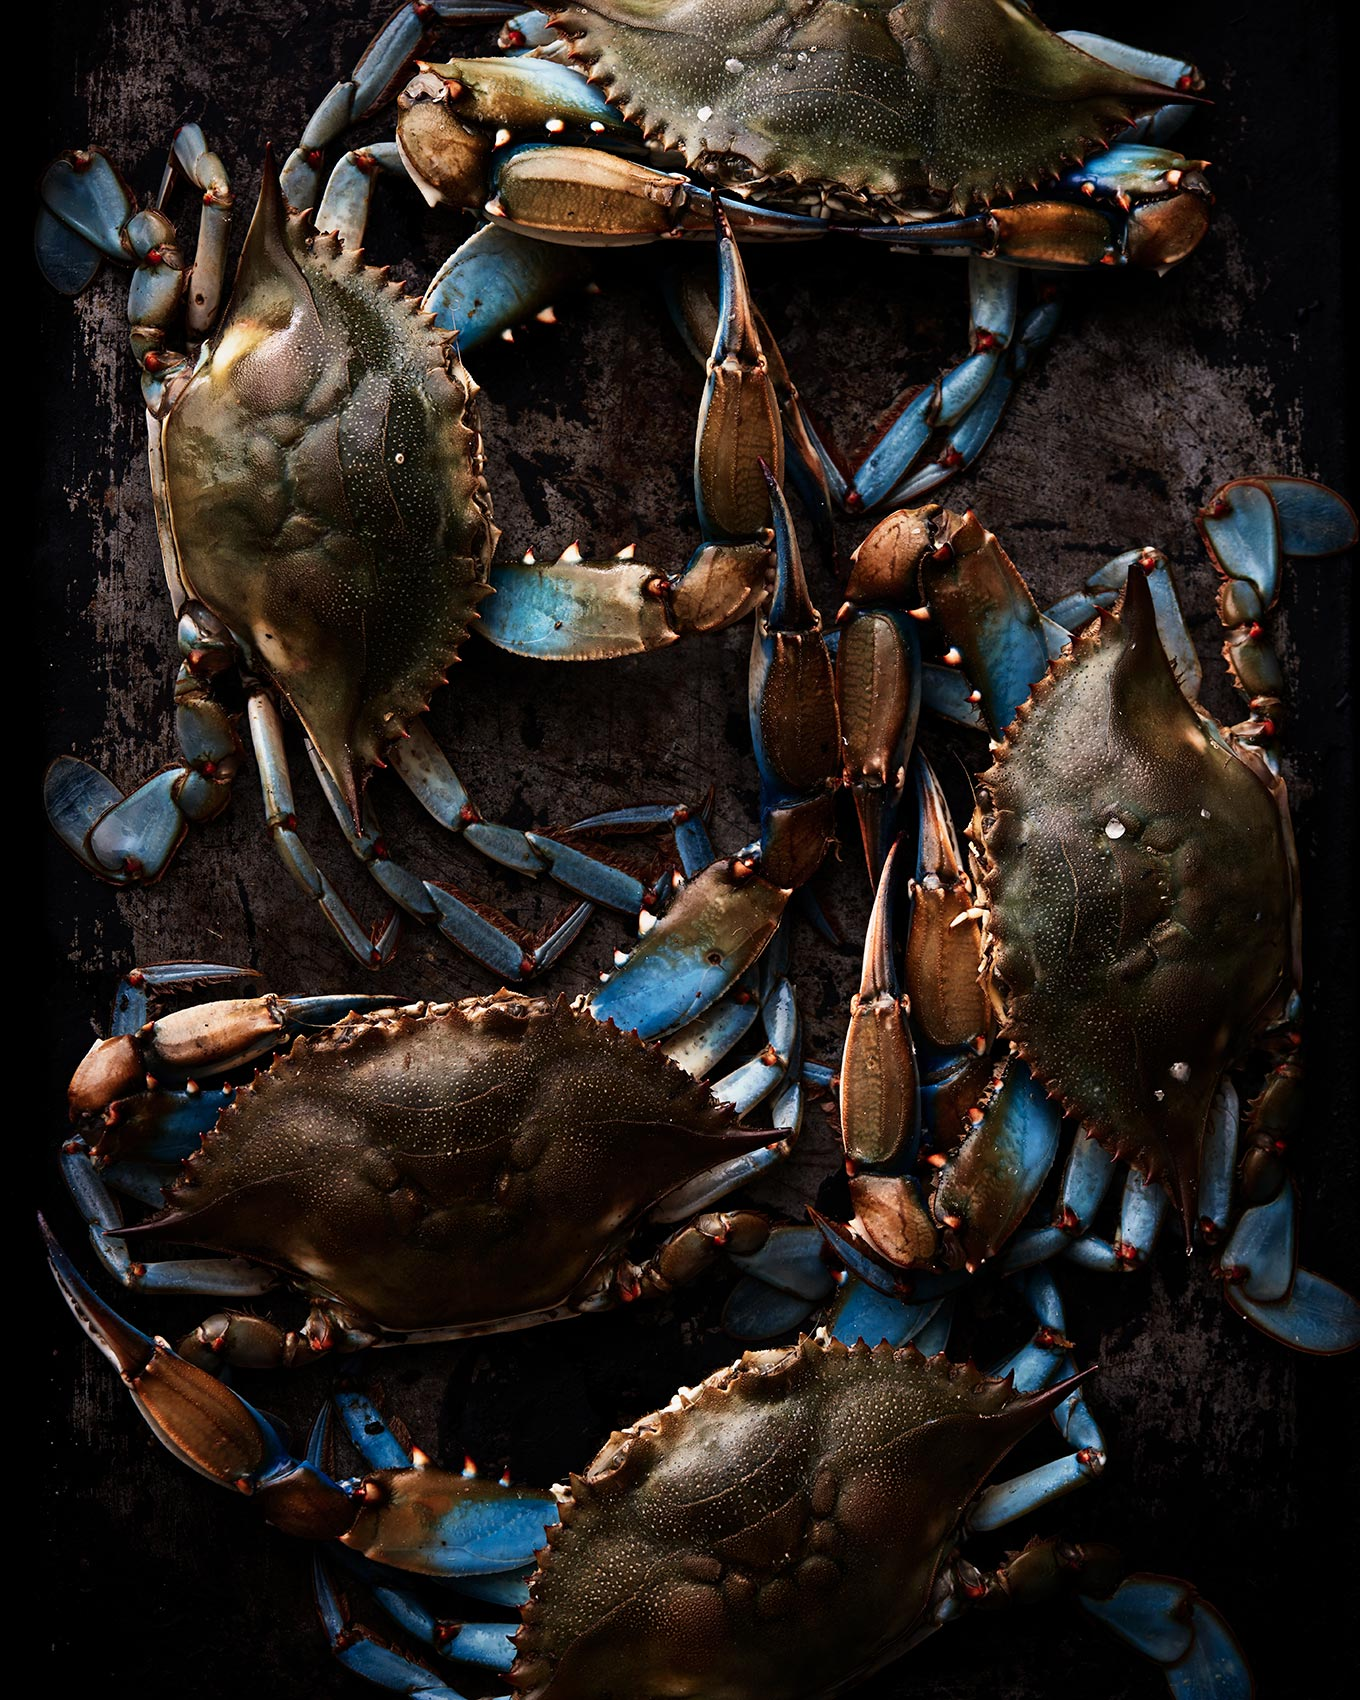 Fresh Maryland blue crabs arranged on a metal baking pan.